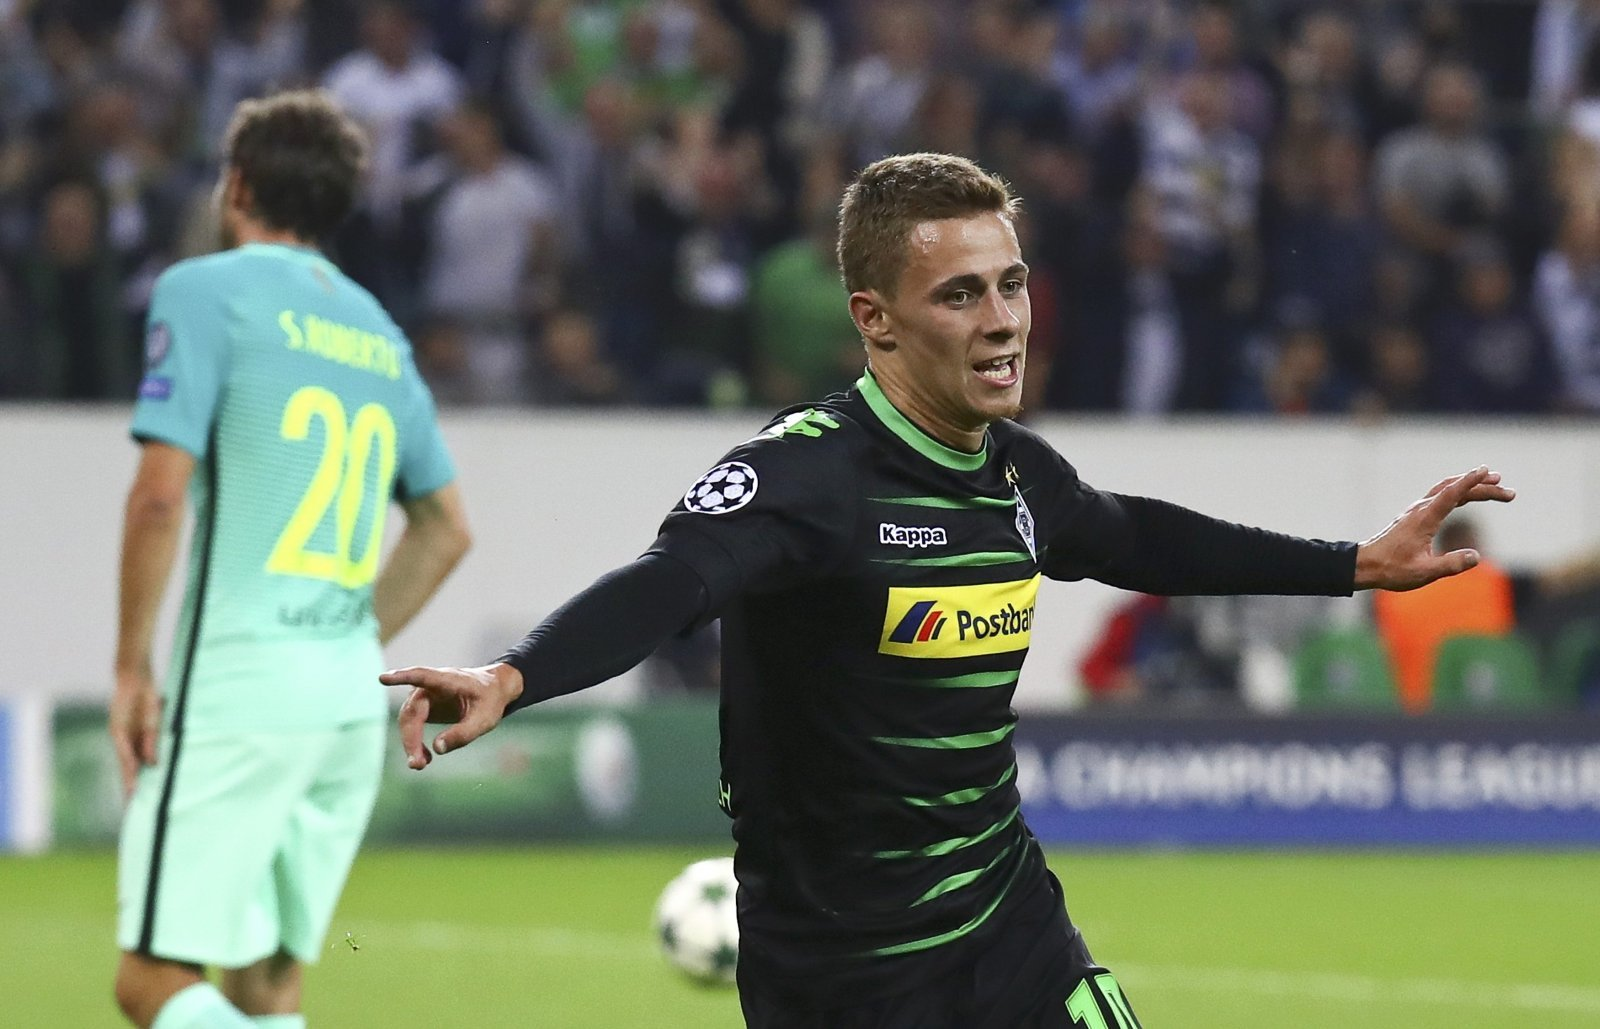 Opinion: Southampton should raid Gladbach again and sign Hazard to upgrade their attack